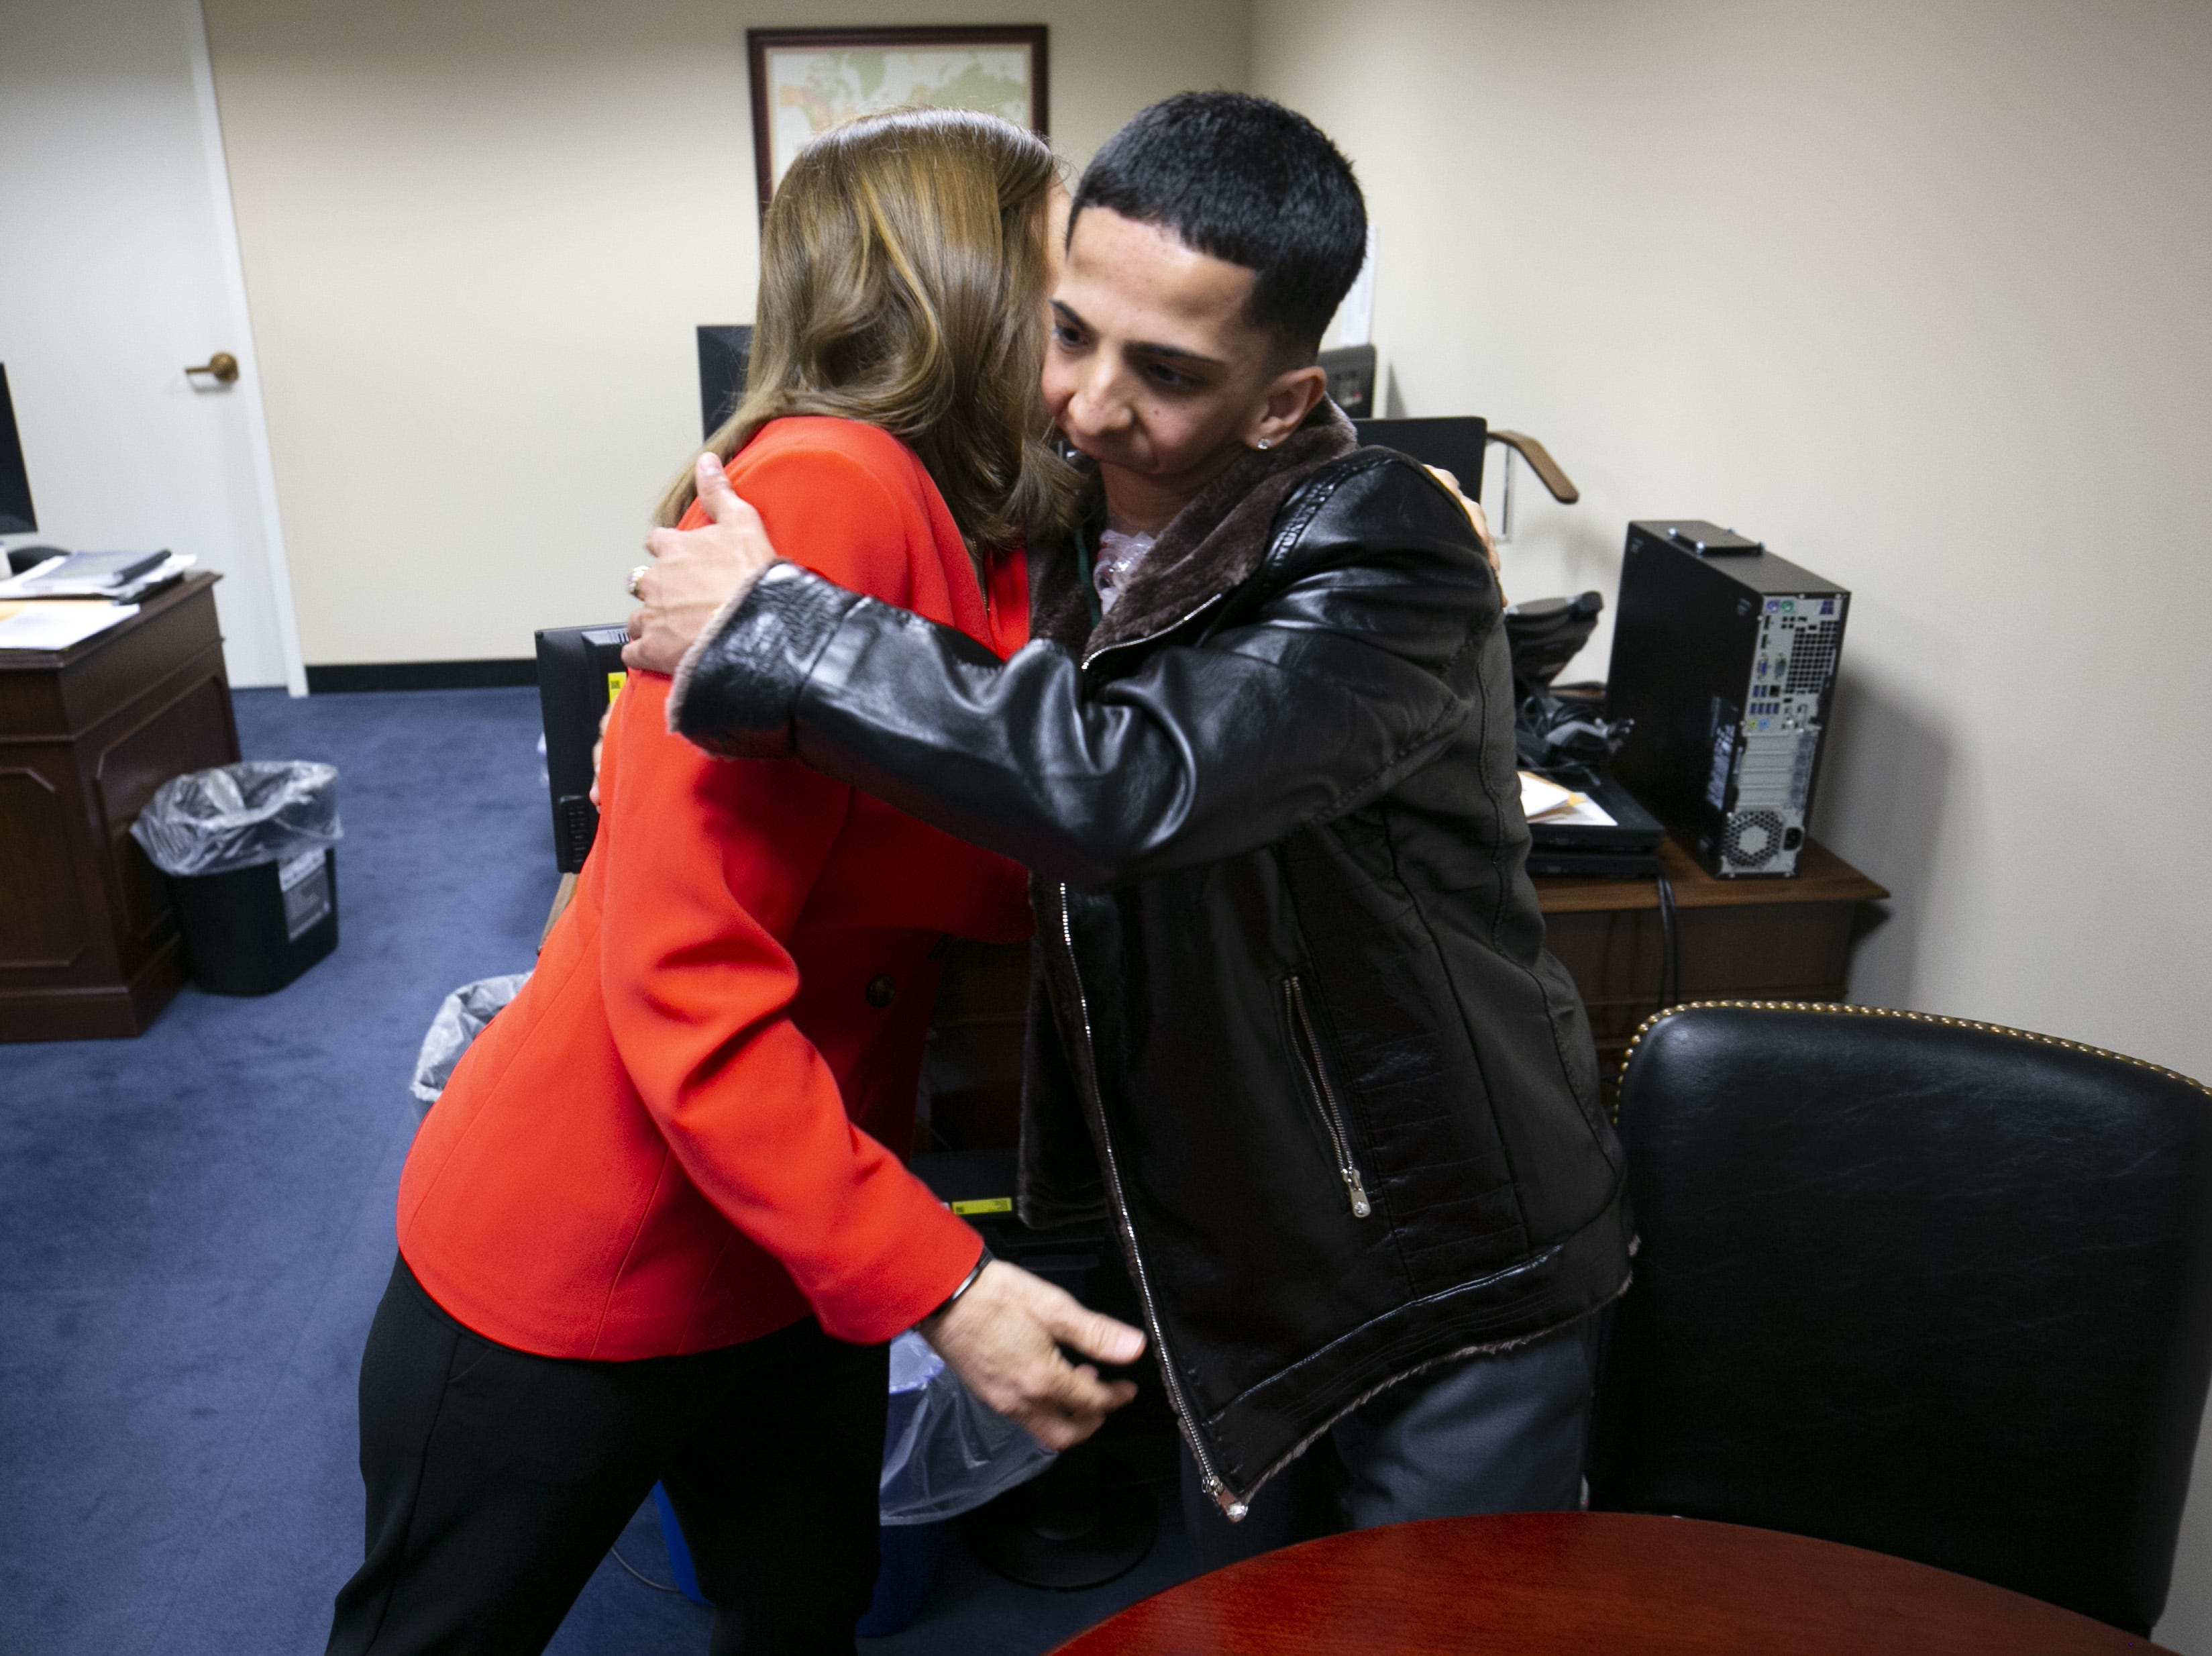 U.S. Sen. Martha McSally, R-Ariz., hugs rapper Isaiah Acosta at McSally's D.C. office.